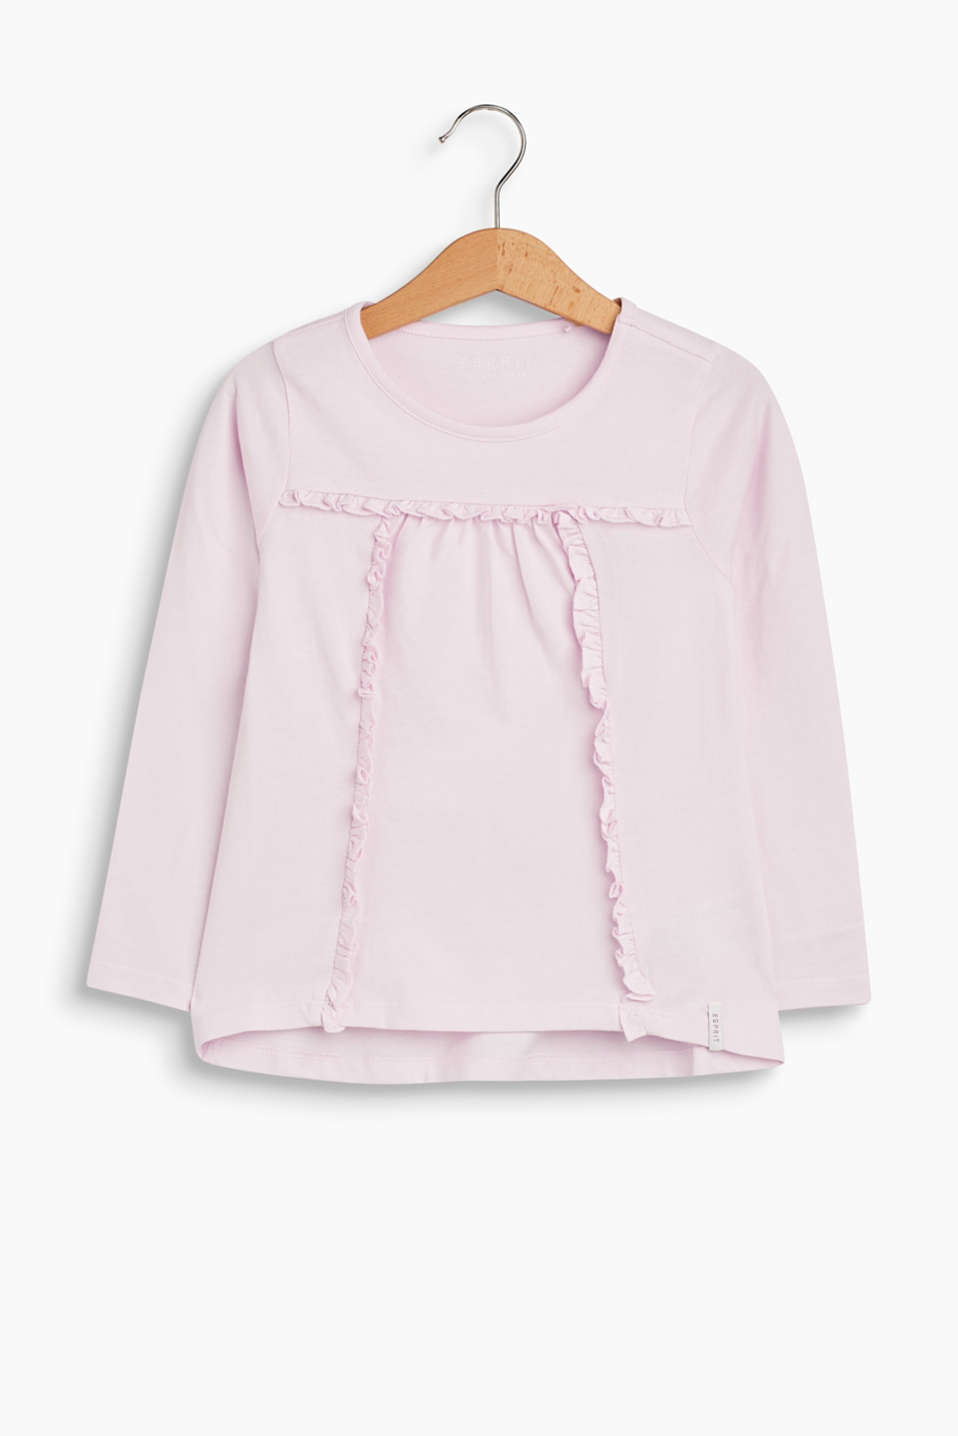 Esprit - Frilled long sleeve top, 100% cotton